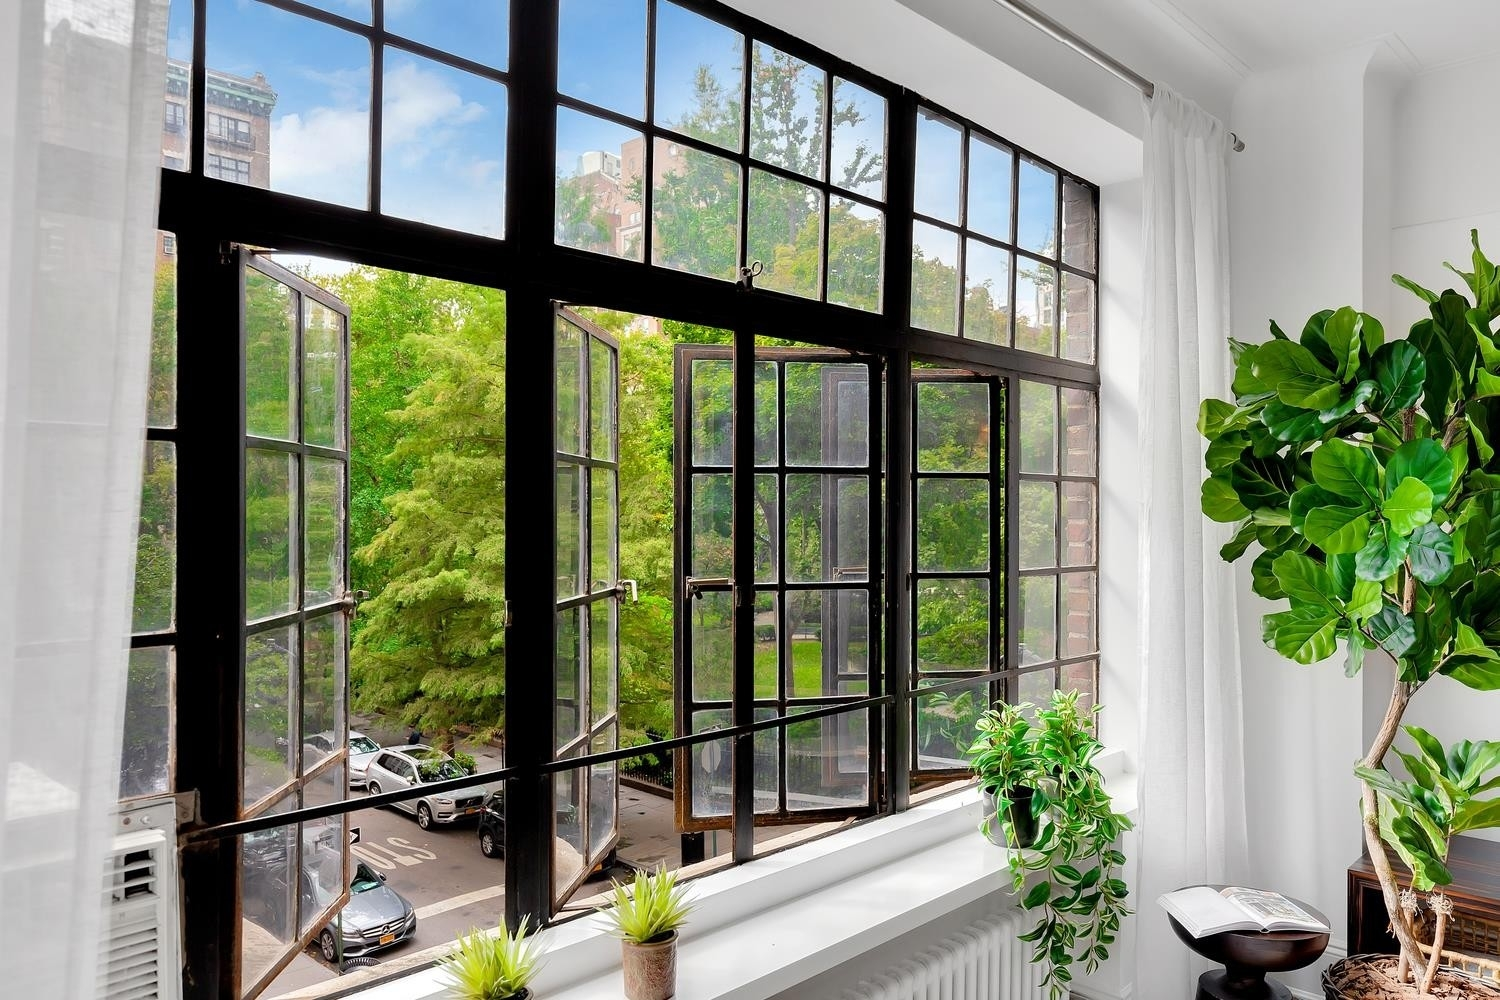 Property at GRAMERCY OWNERS LTD, 44 Gramercy Park North, 4C Gramercy Park, New York, NY 10010